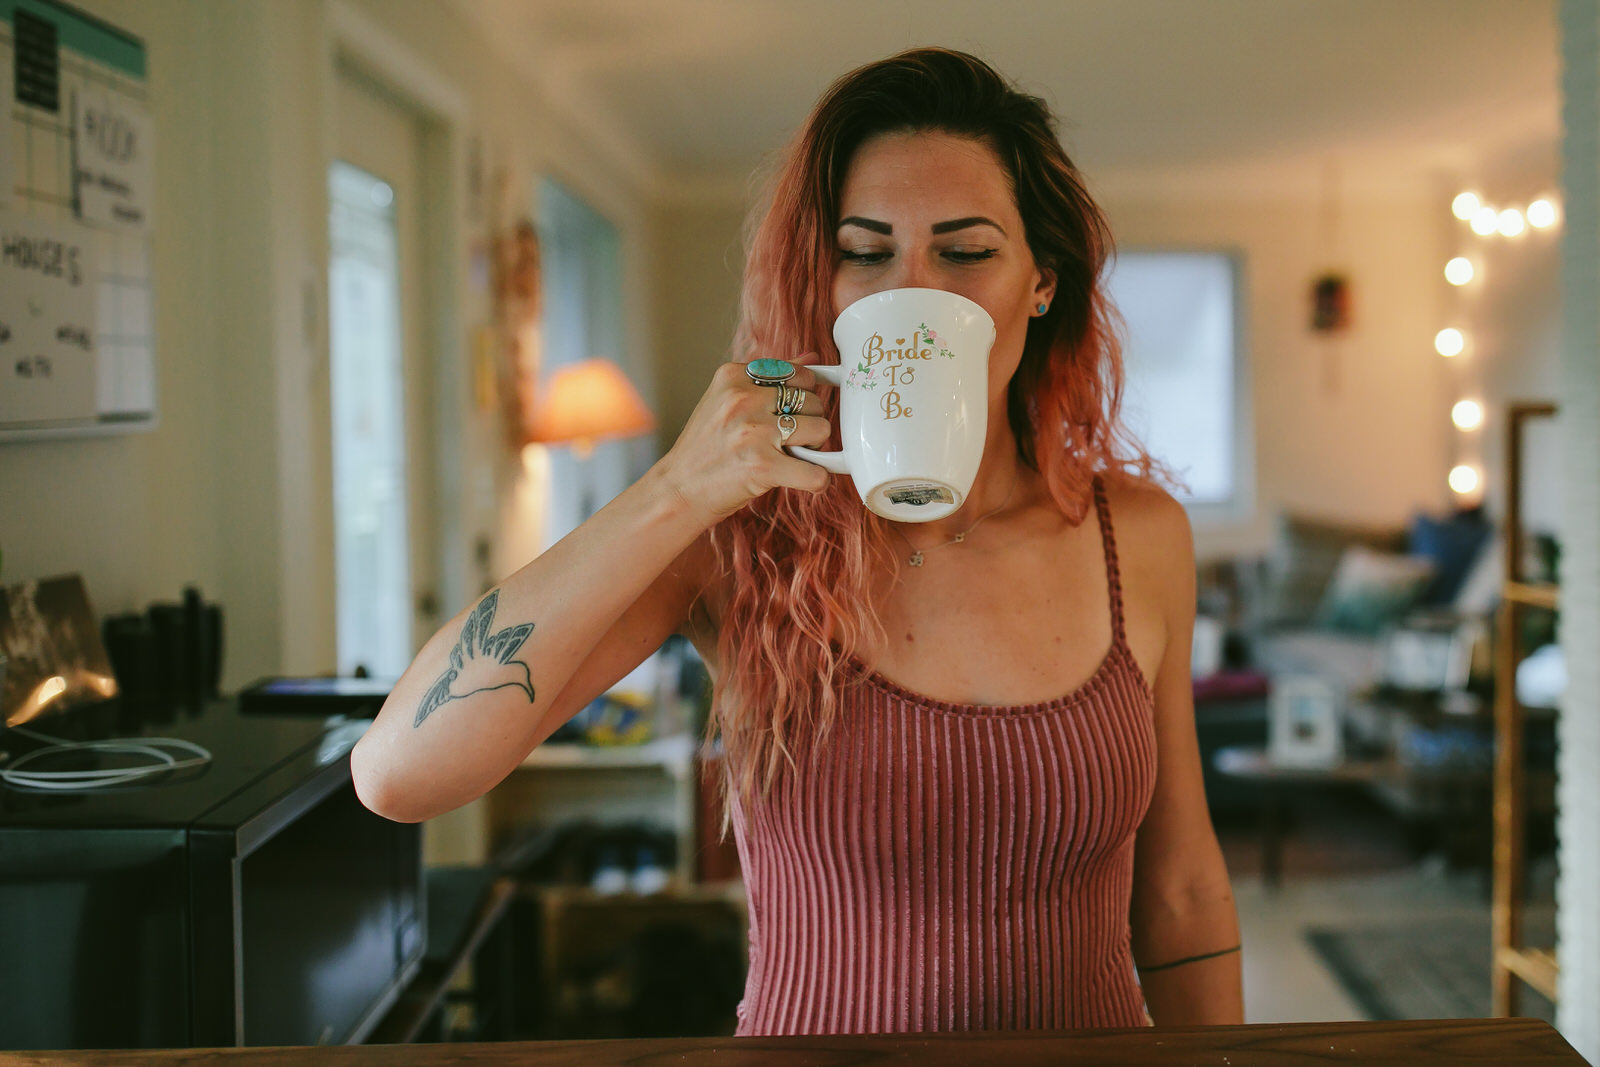 tattooed girl drinking coffee at home